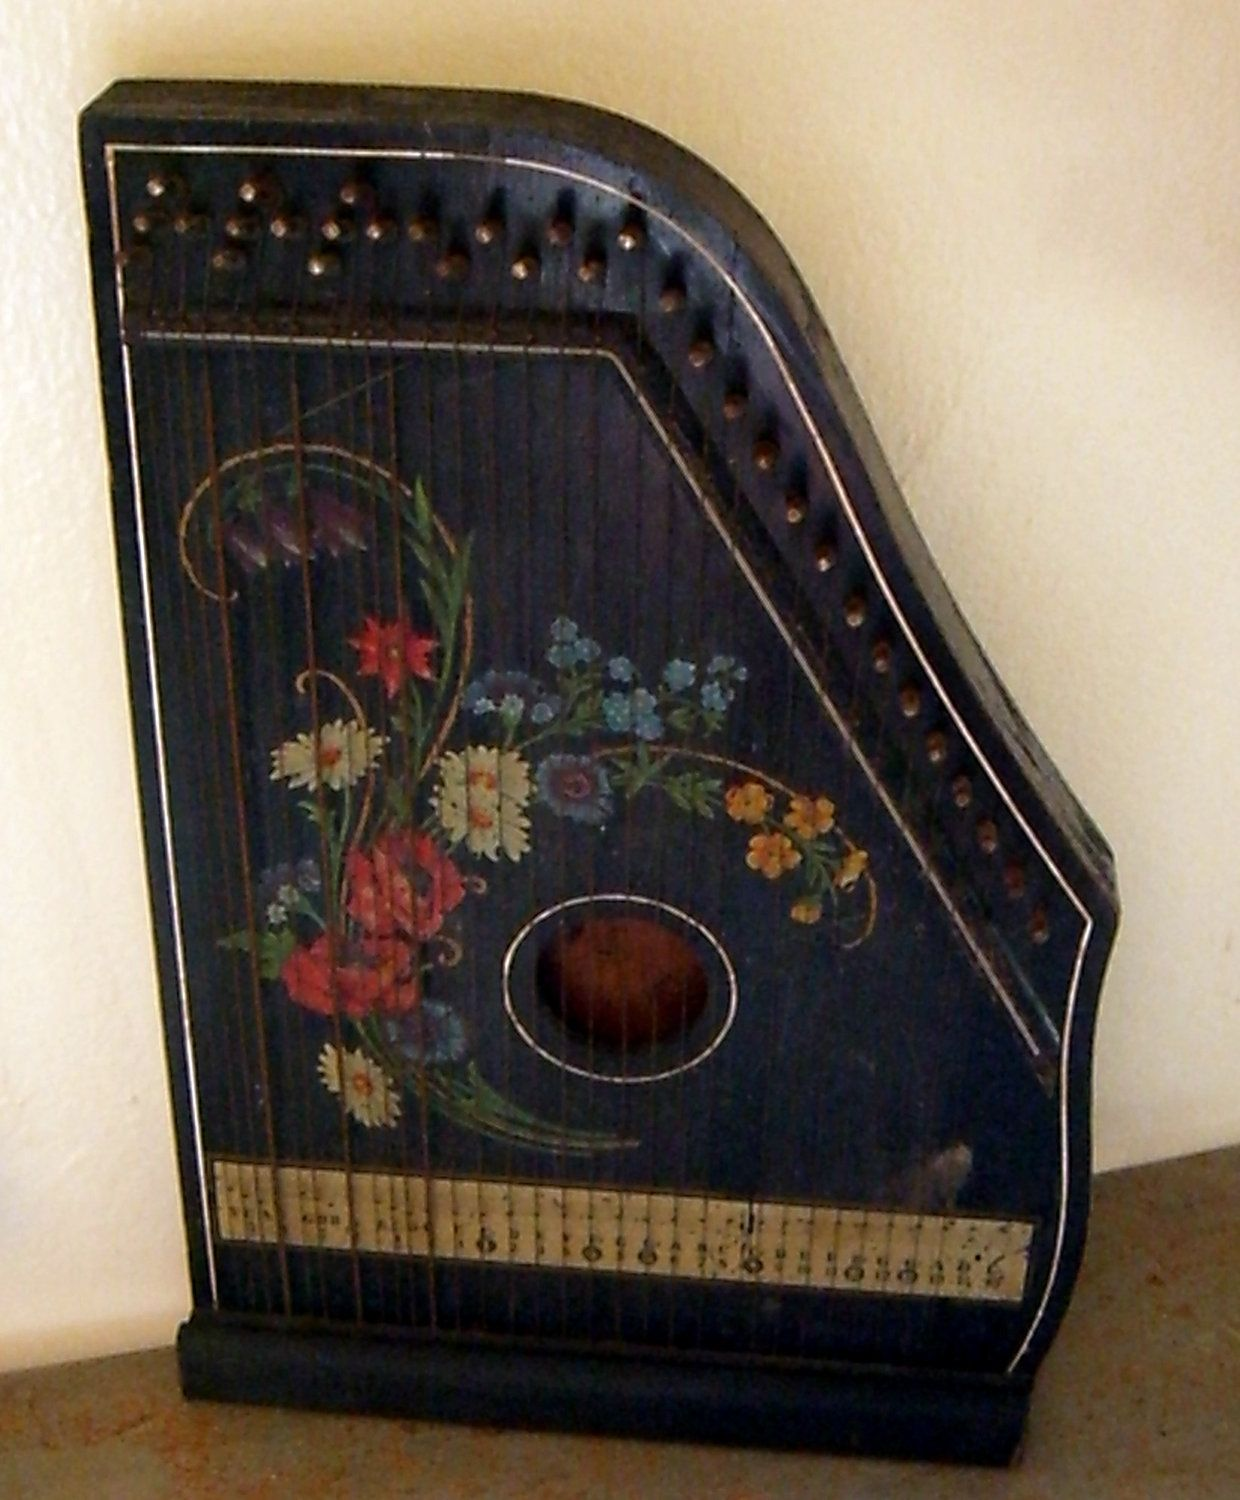 antique zither harp fretless musima zither germany